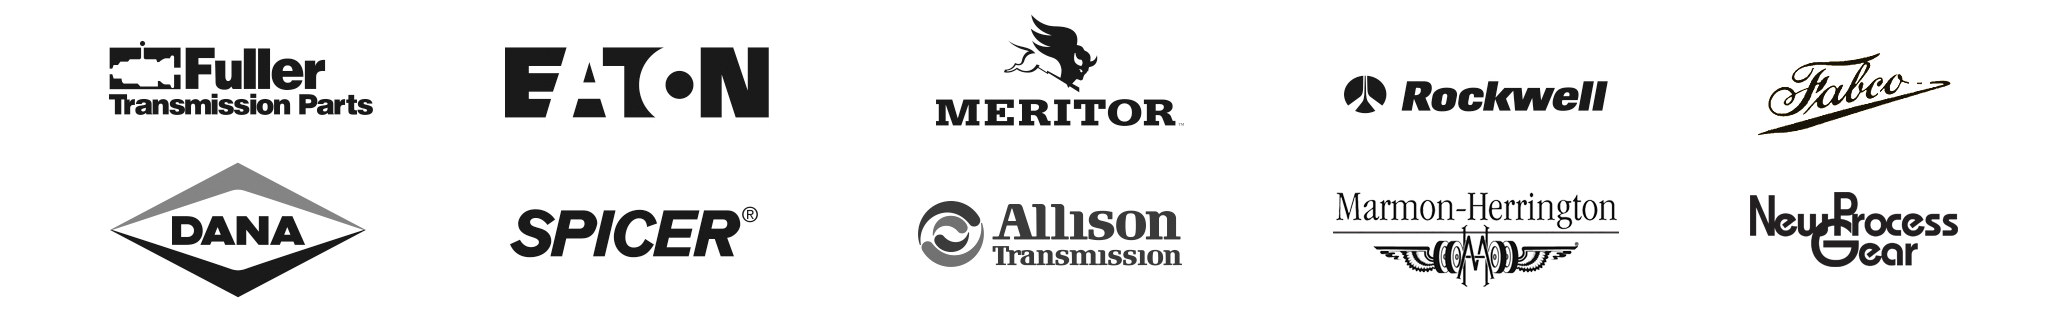 Meritor and Eaton Authorized Rebuilders - Truck Gears Inc